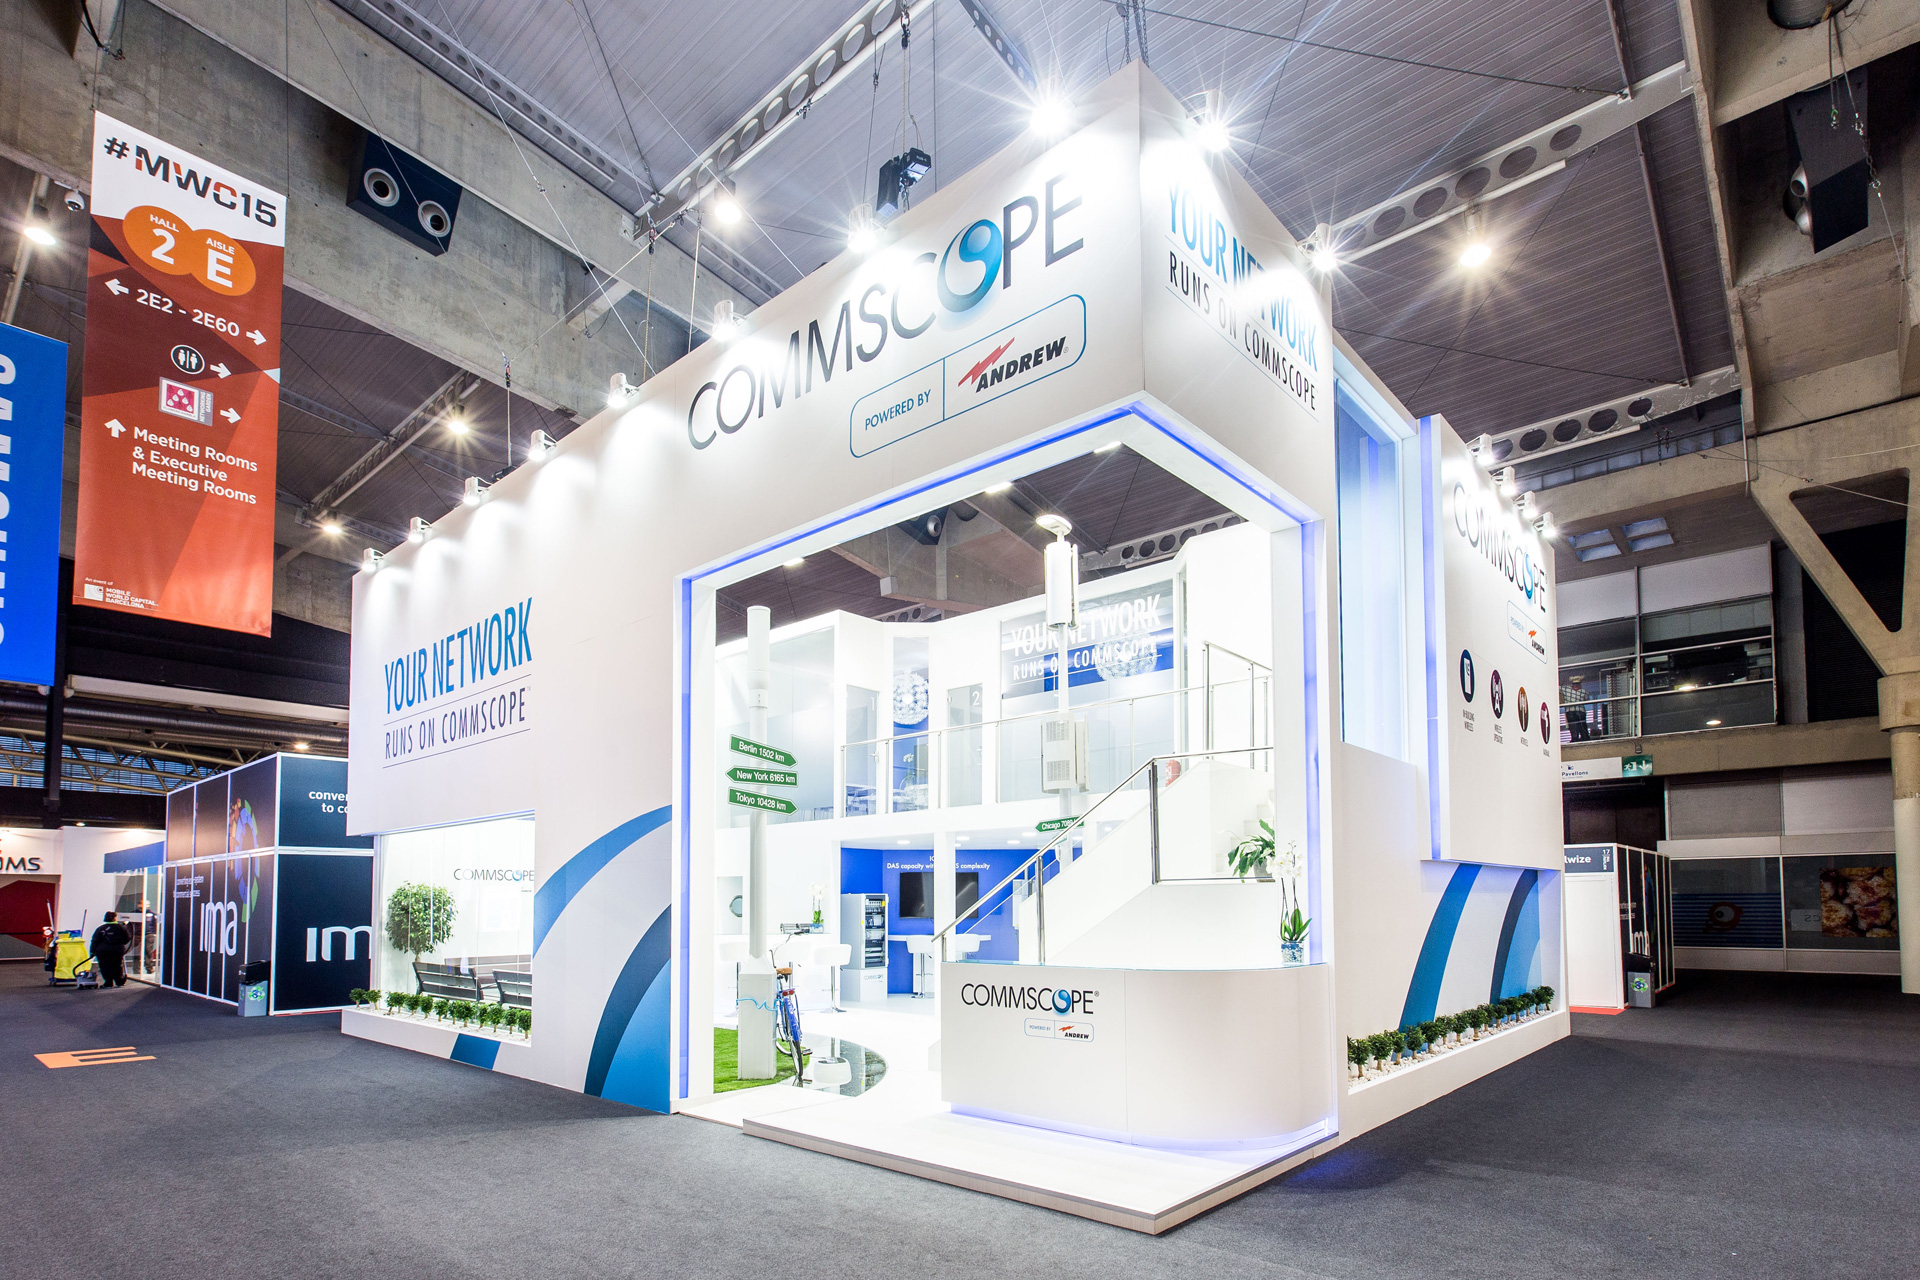 Exhibition Stand Design Website : Commscope mwc barcelona pro expo exhibition stand